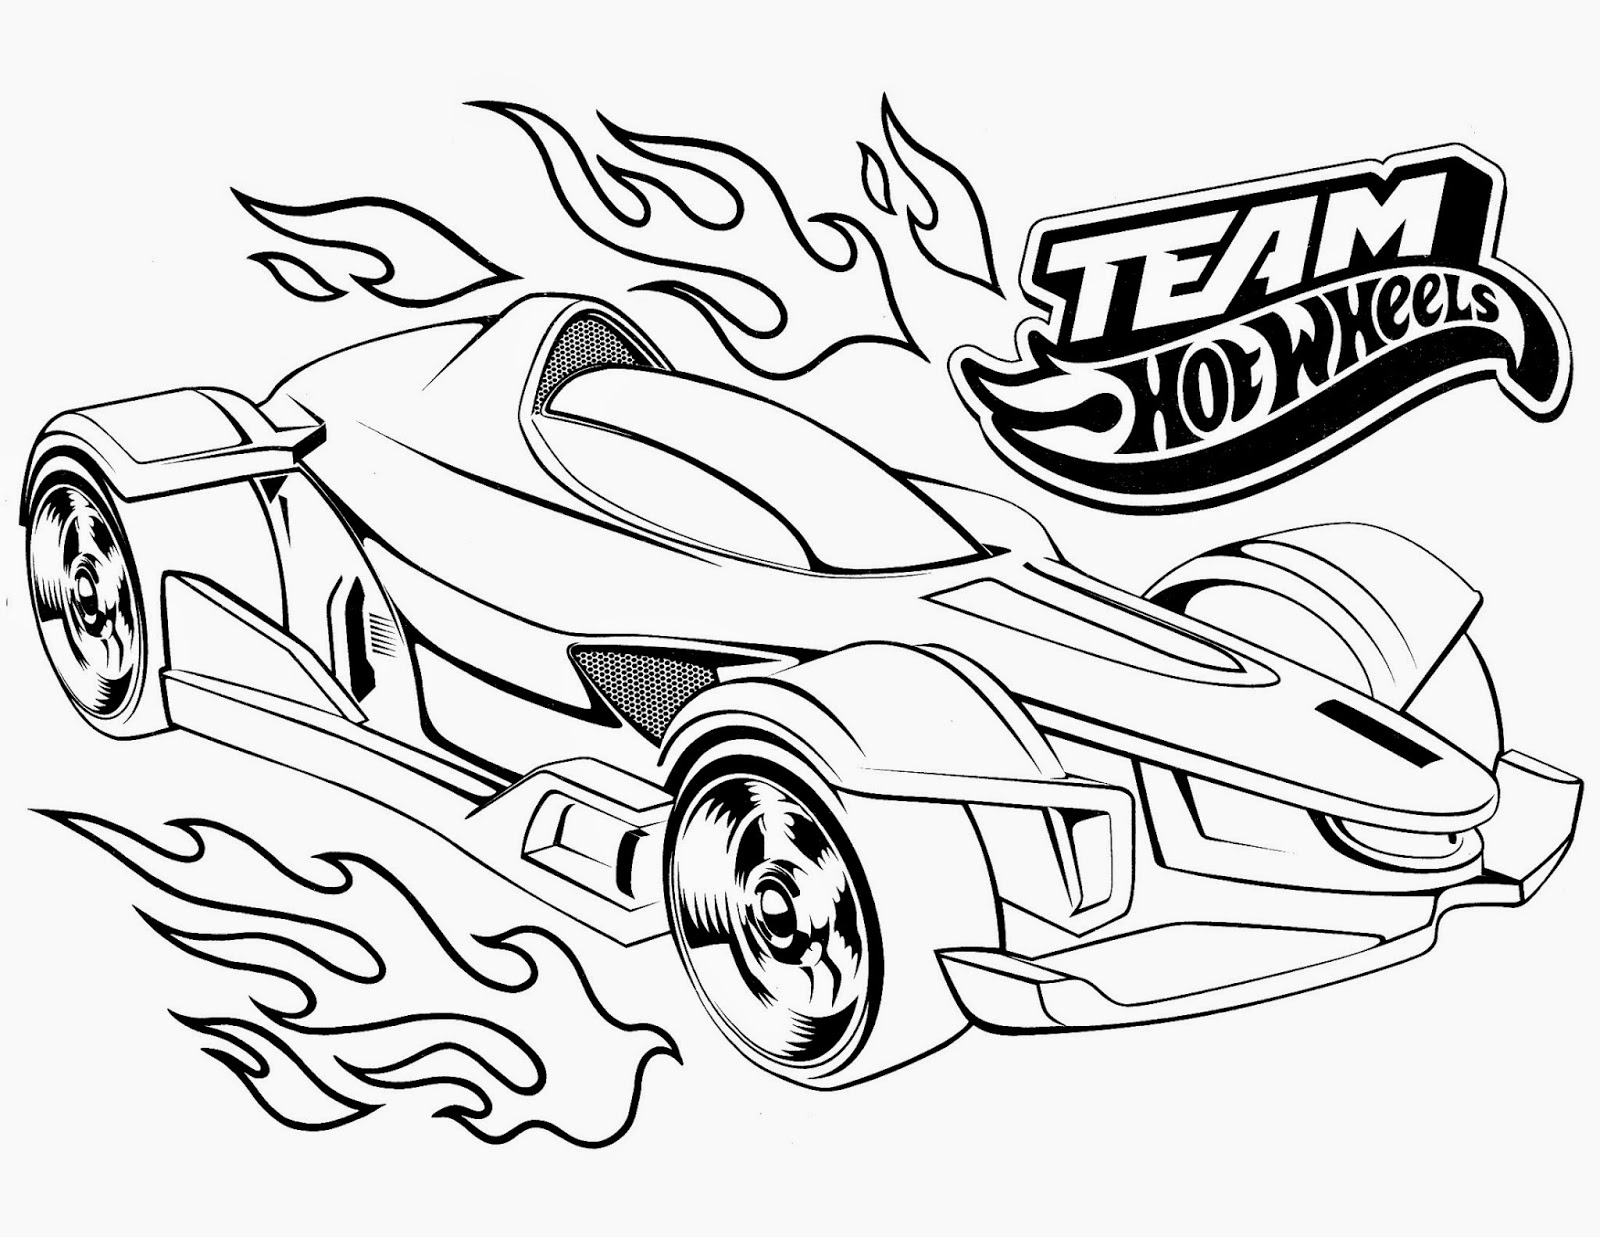 hotwheels coloring pages free printable hot wheels coloring pages for kids coloring hotwheels pages 1 1